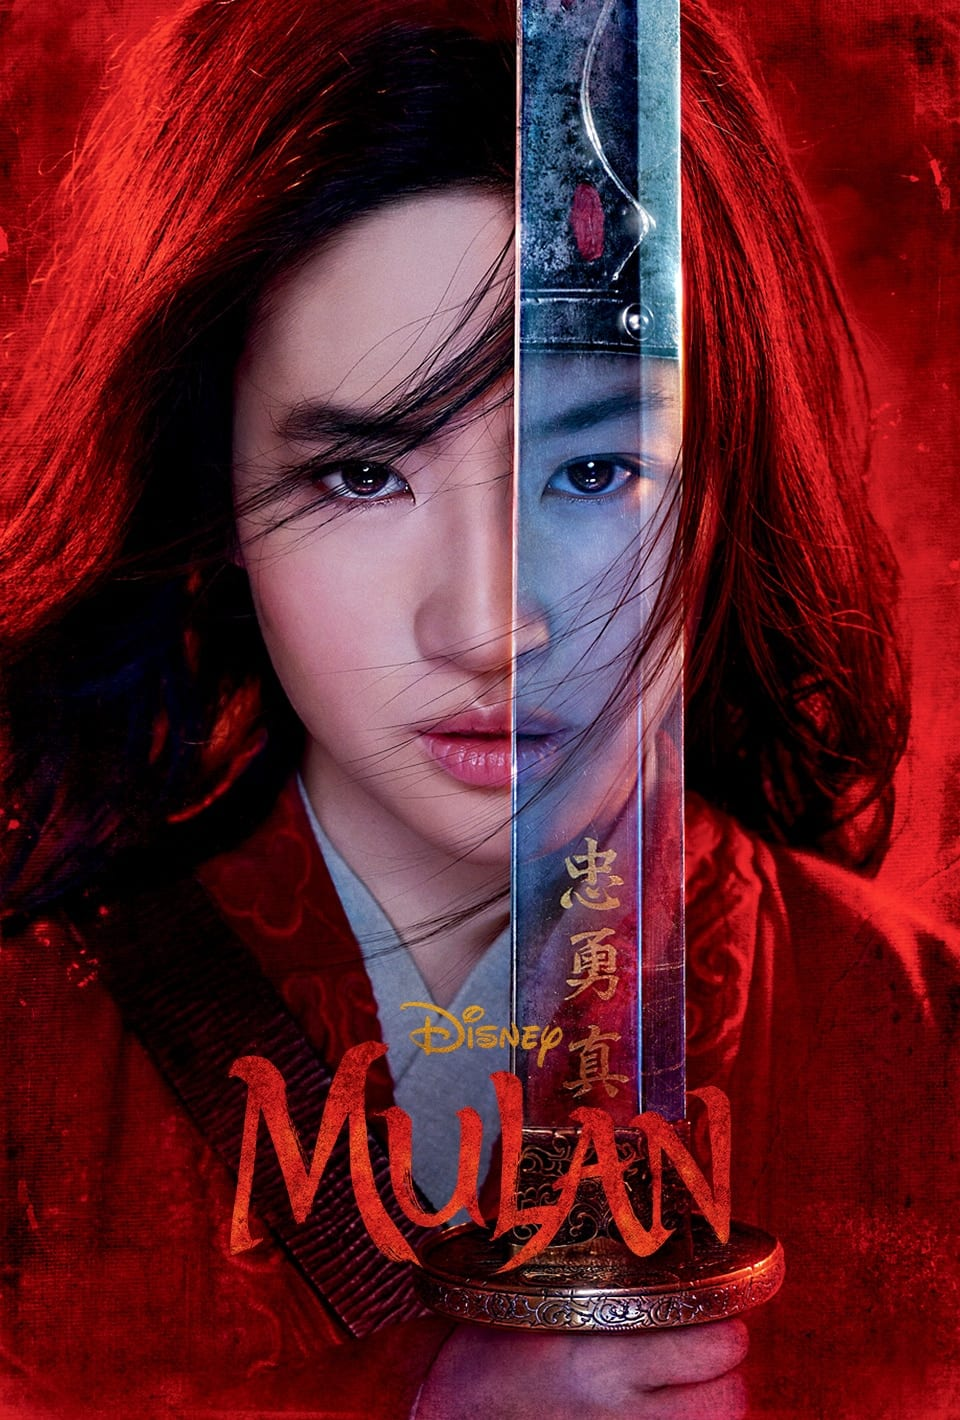 Mulan will be released on Disney+ in September at a premium price